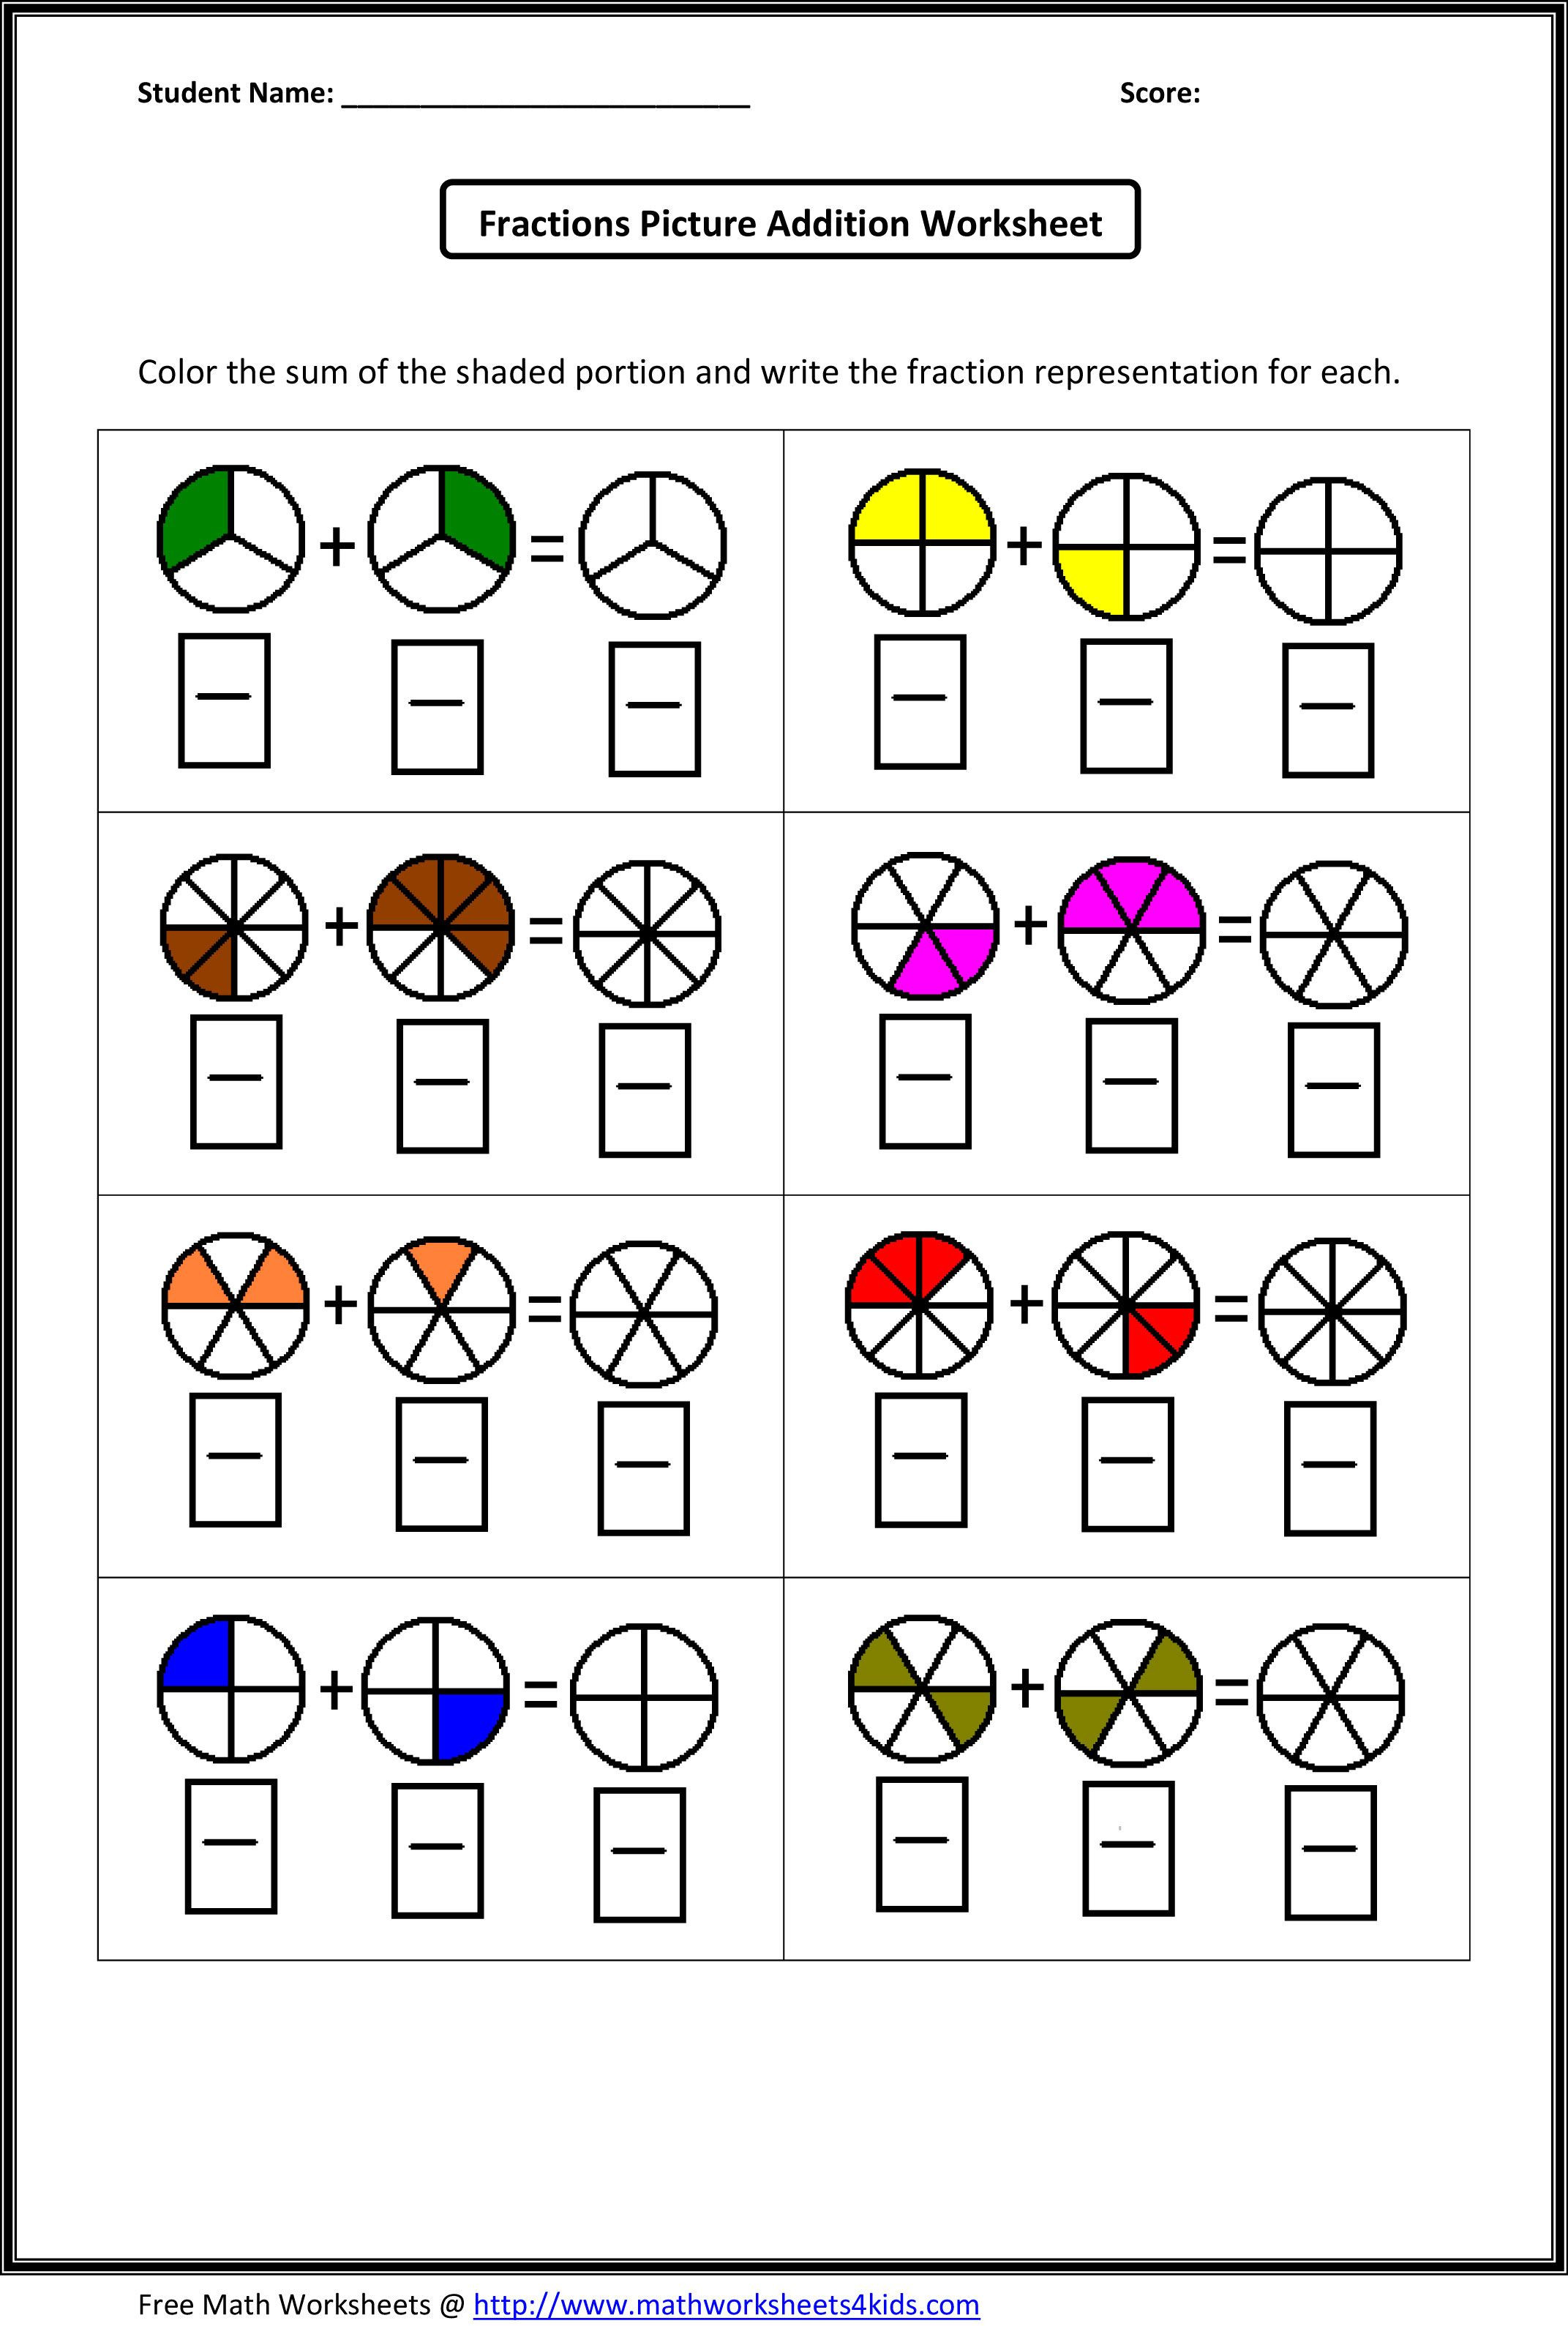 Fractions Worksheets Grade 4 Fraction Addition Worksheets